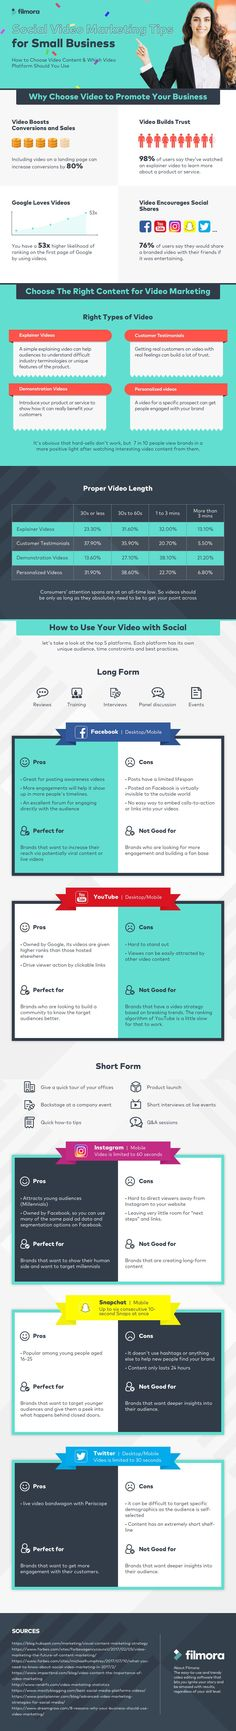 Social media videos can be a smart way to drive traffic and convert visitors, but each social platform has pros and cons that you'll want to know about before investing in this medium.